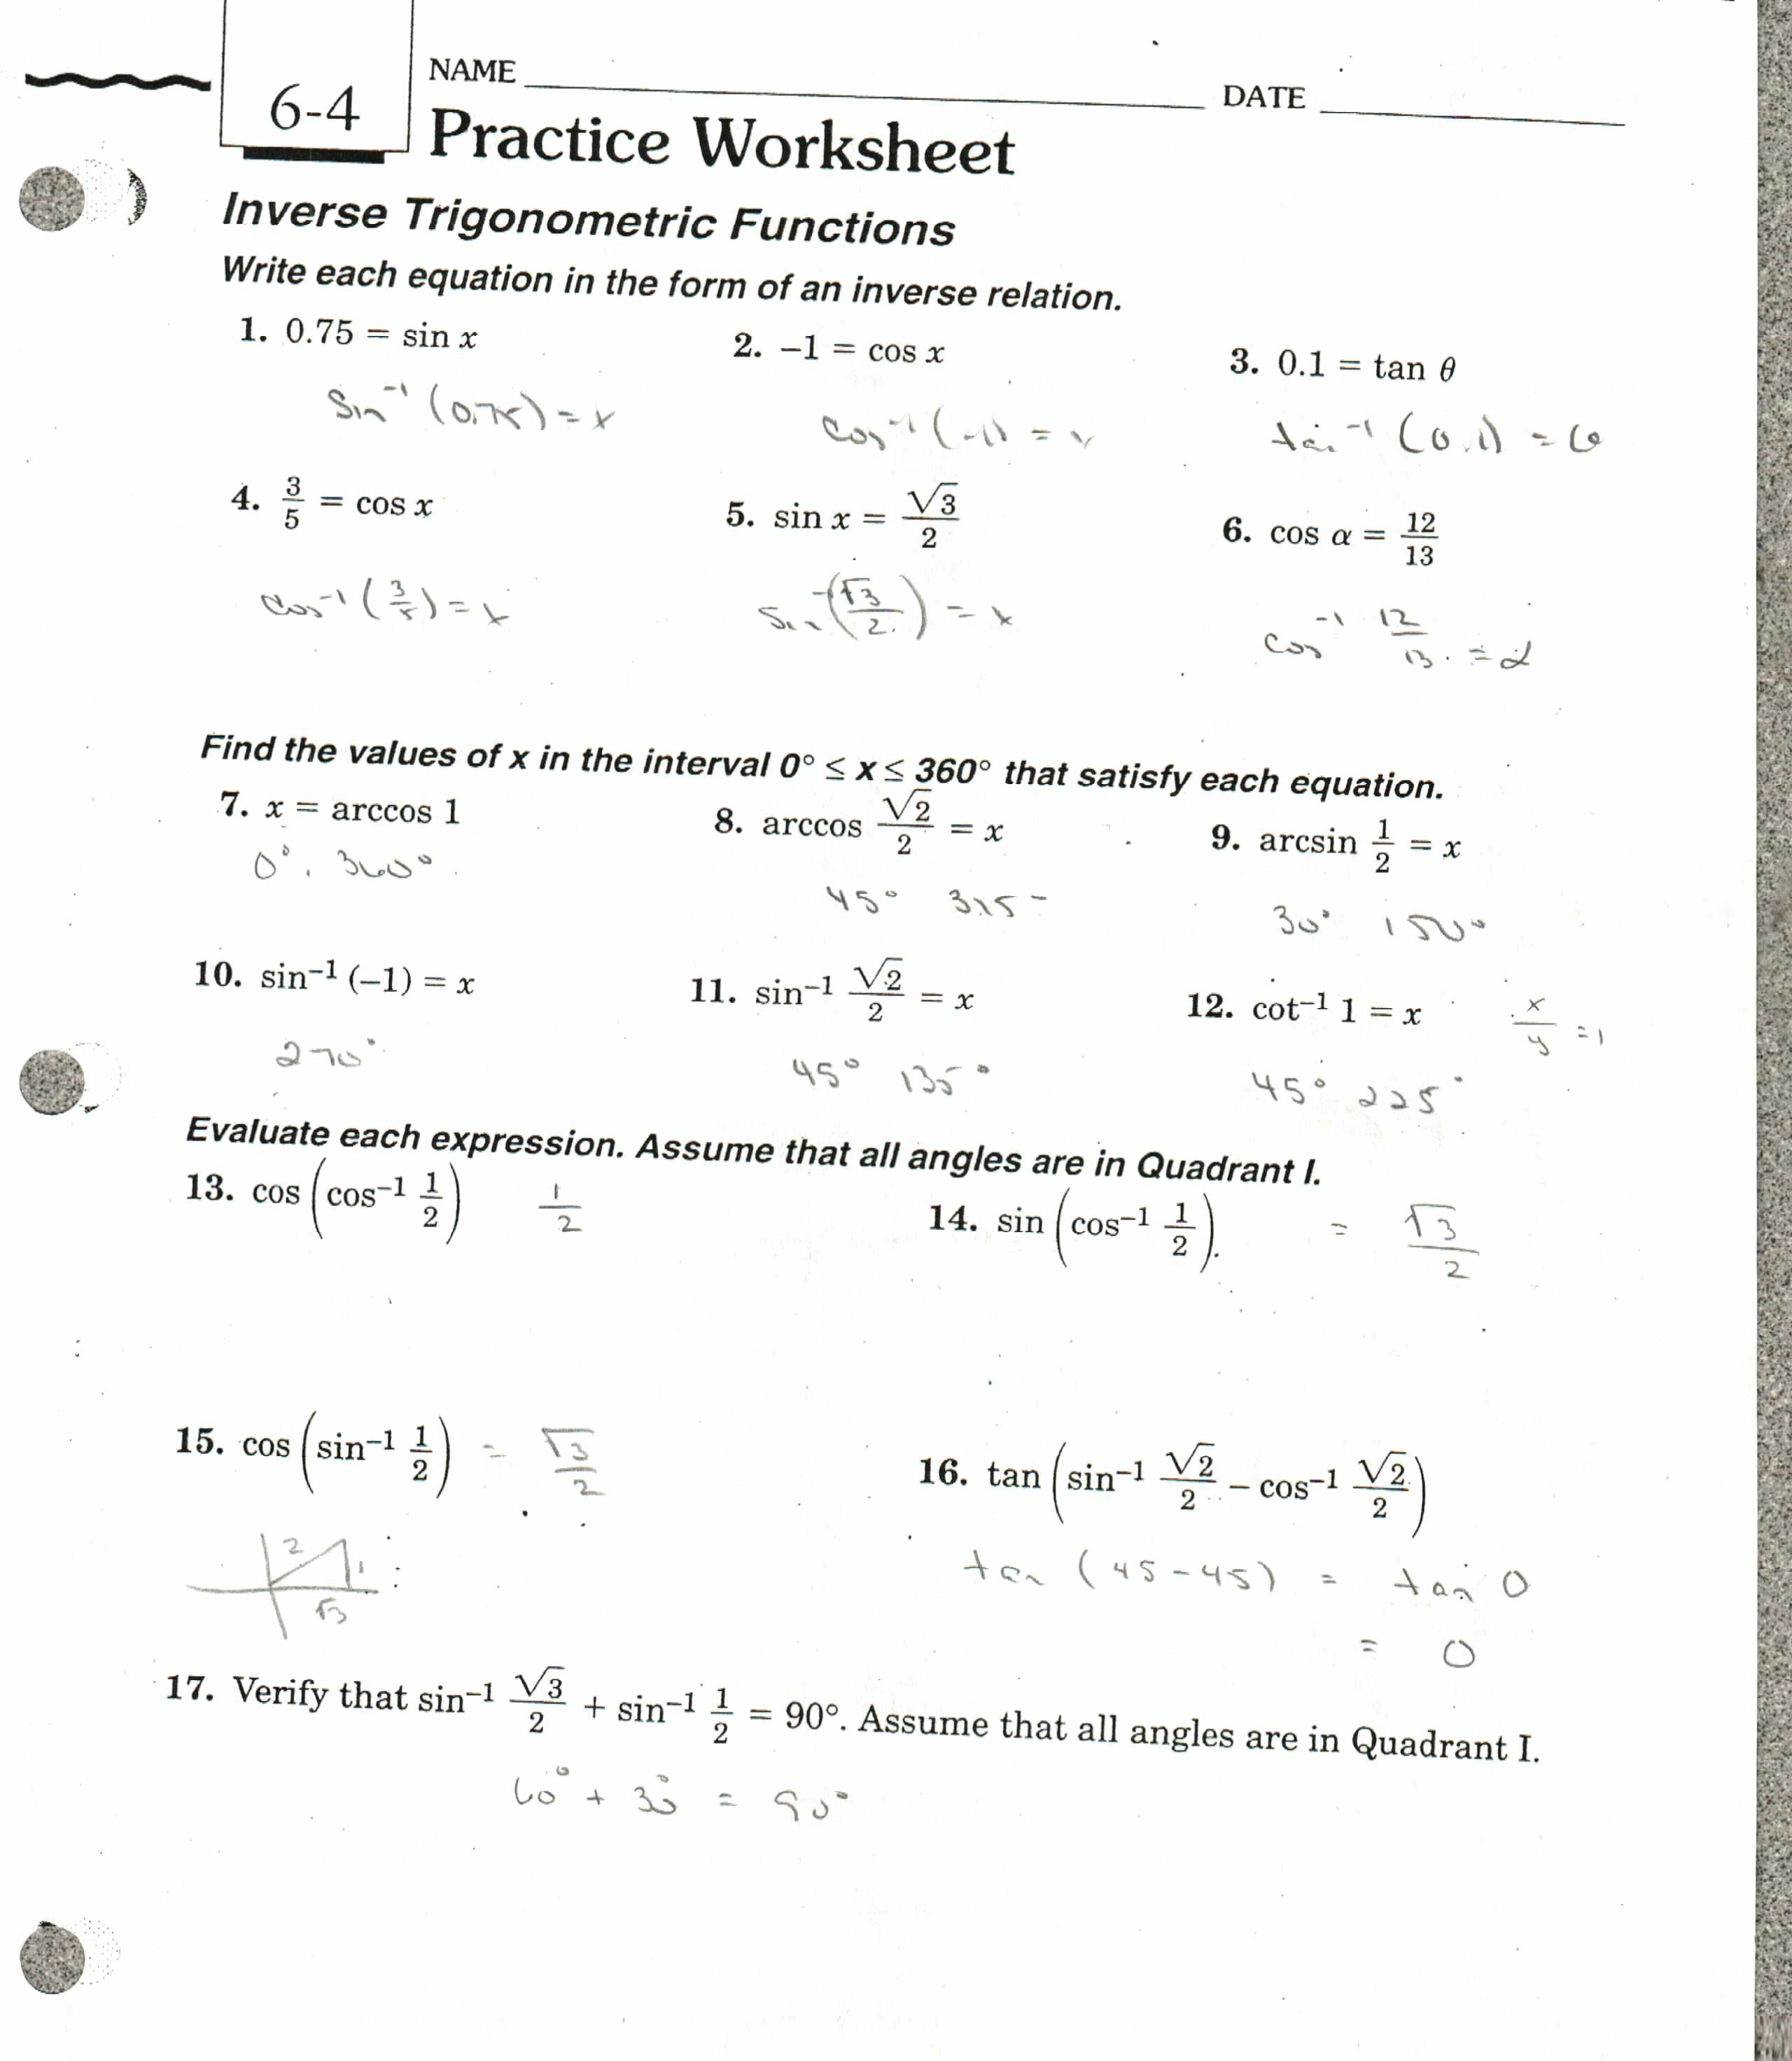 worksheet 5.3 Solving Trig Equations Practice Worksheet 1 Answers solving trigonometric equations worksheet free worksheets library lv g trig functi s w ksheet ksheets libr ry